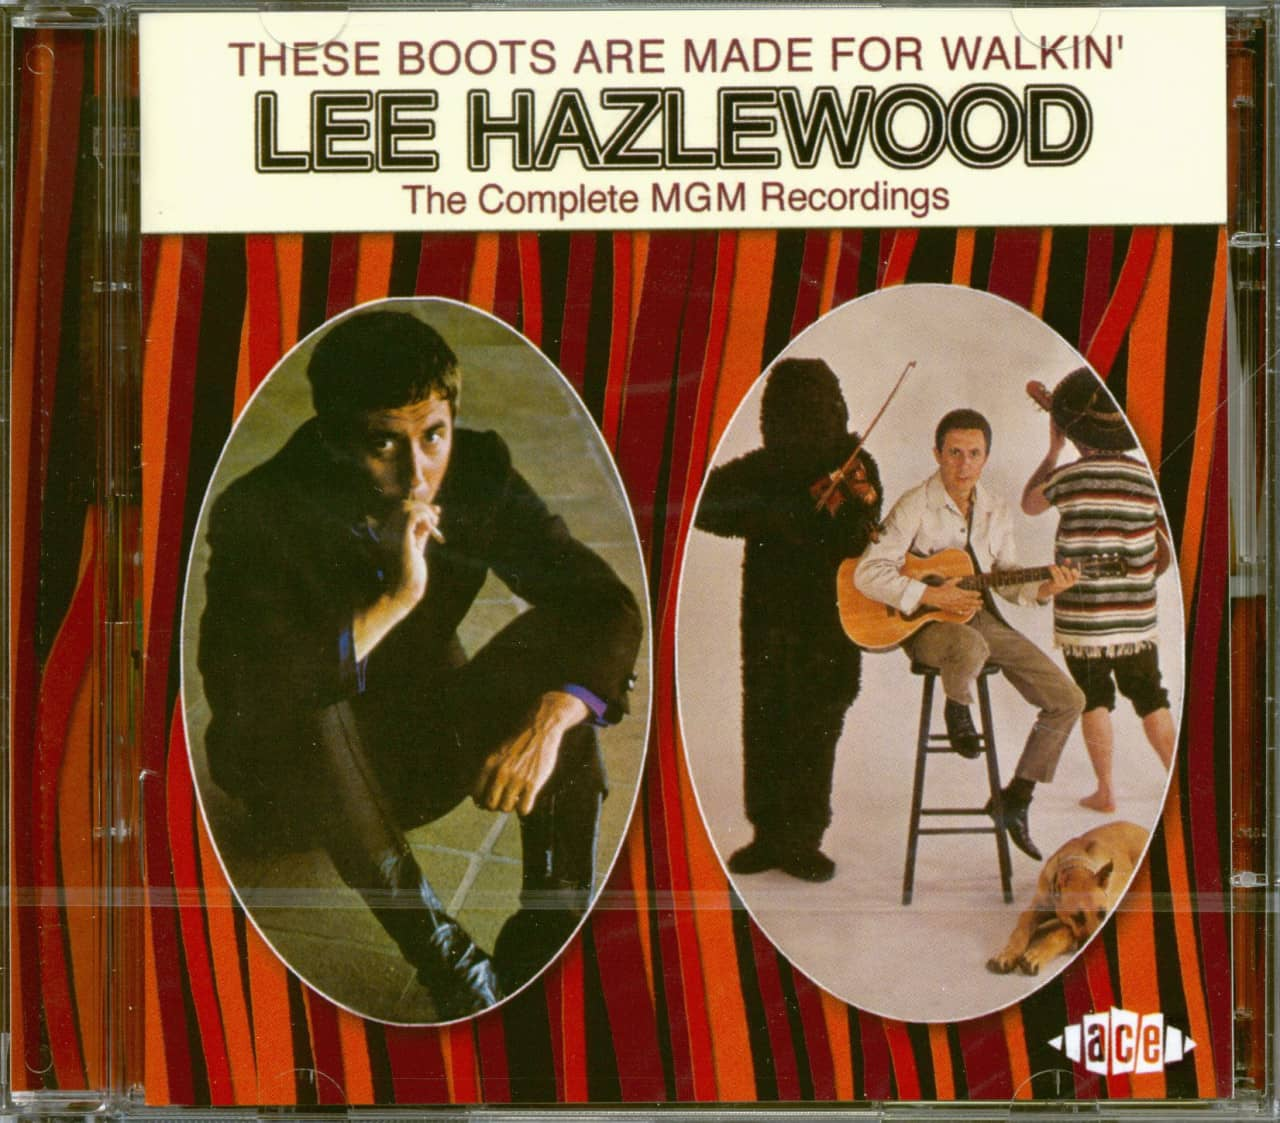 Lee Hazlewood - These Boots Are Made For Walkin´ - The Complete MGM Recordings (2-CD)